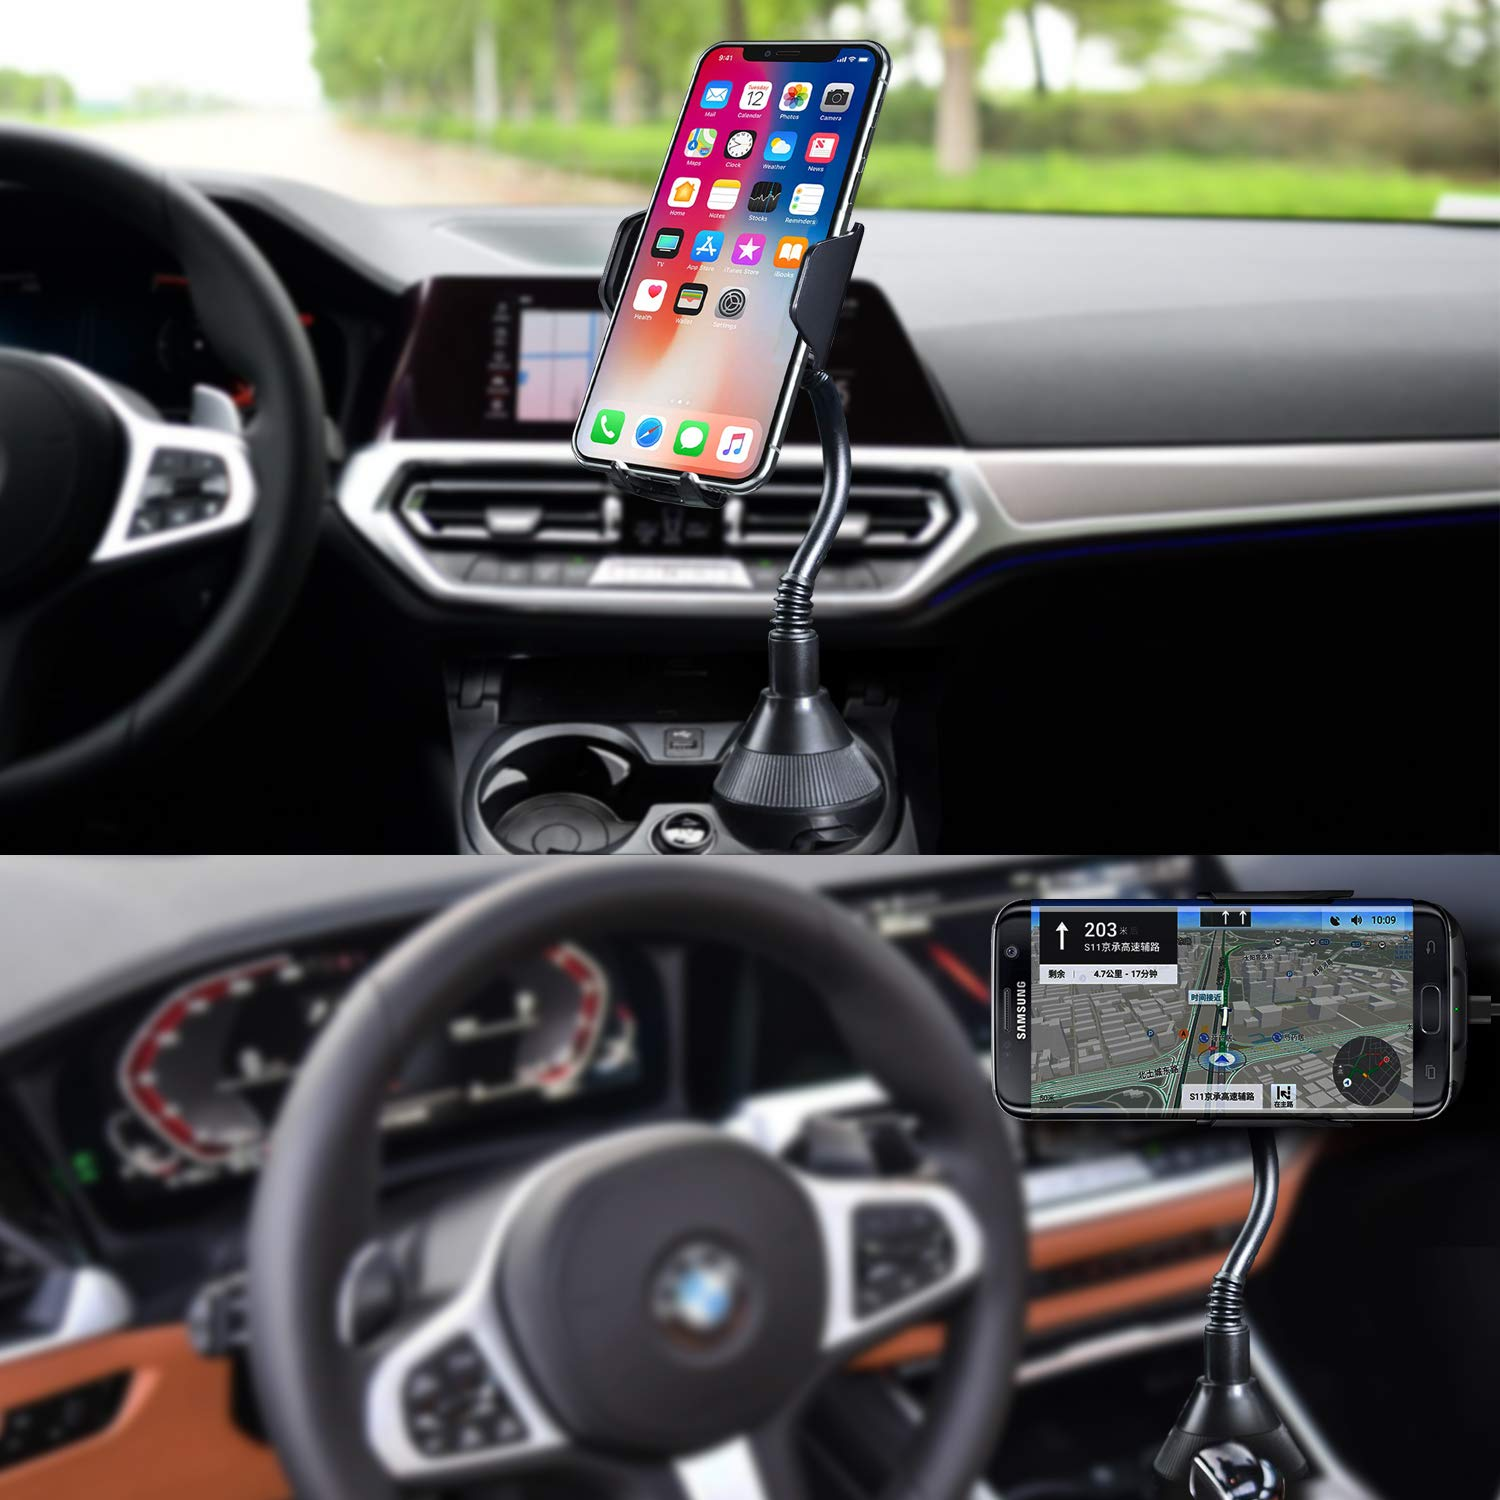 MQOUNY Car Wireless Charger,360 Degree 10w Qi Fast Wireless Charging Cup Phone Holder /& Air Vent Car Phone Mount Compatible with with iPhone 11//11Pro Max//XR//Xs Max//Xs//8,Samsung Galaxy Note 10 Black